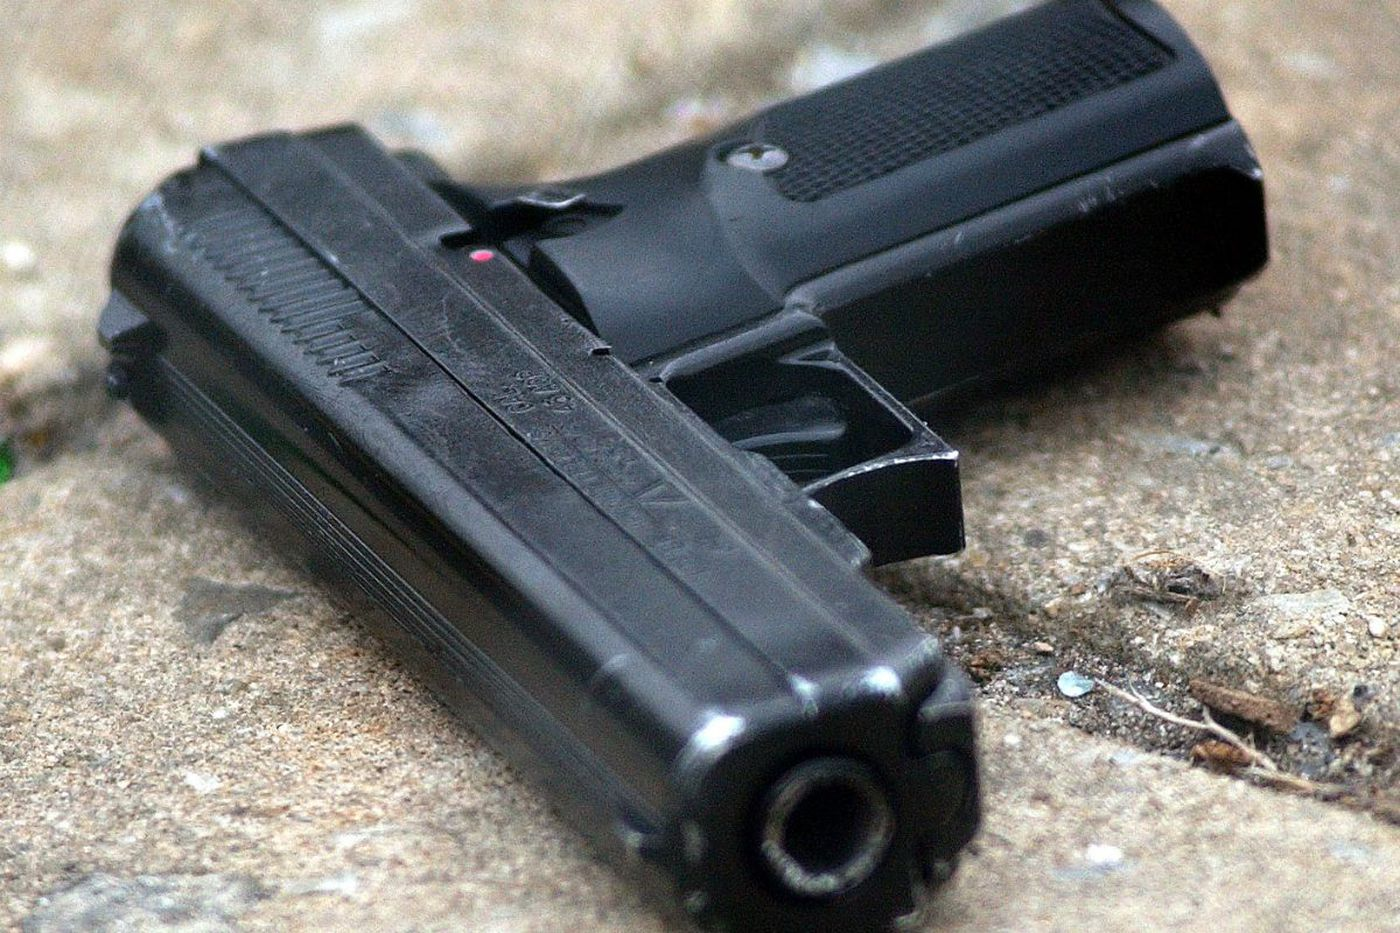 Student, 13, with loaded handgun arrested at Society Hill elementary school